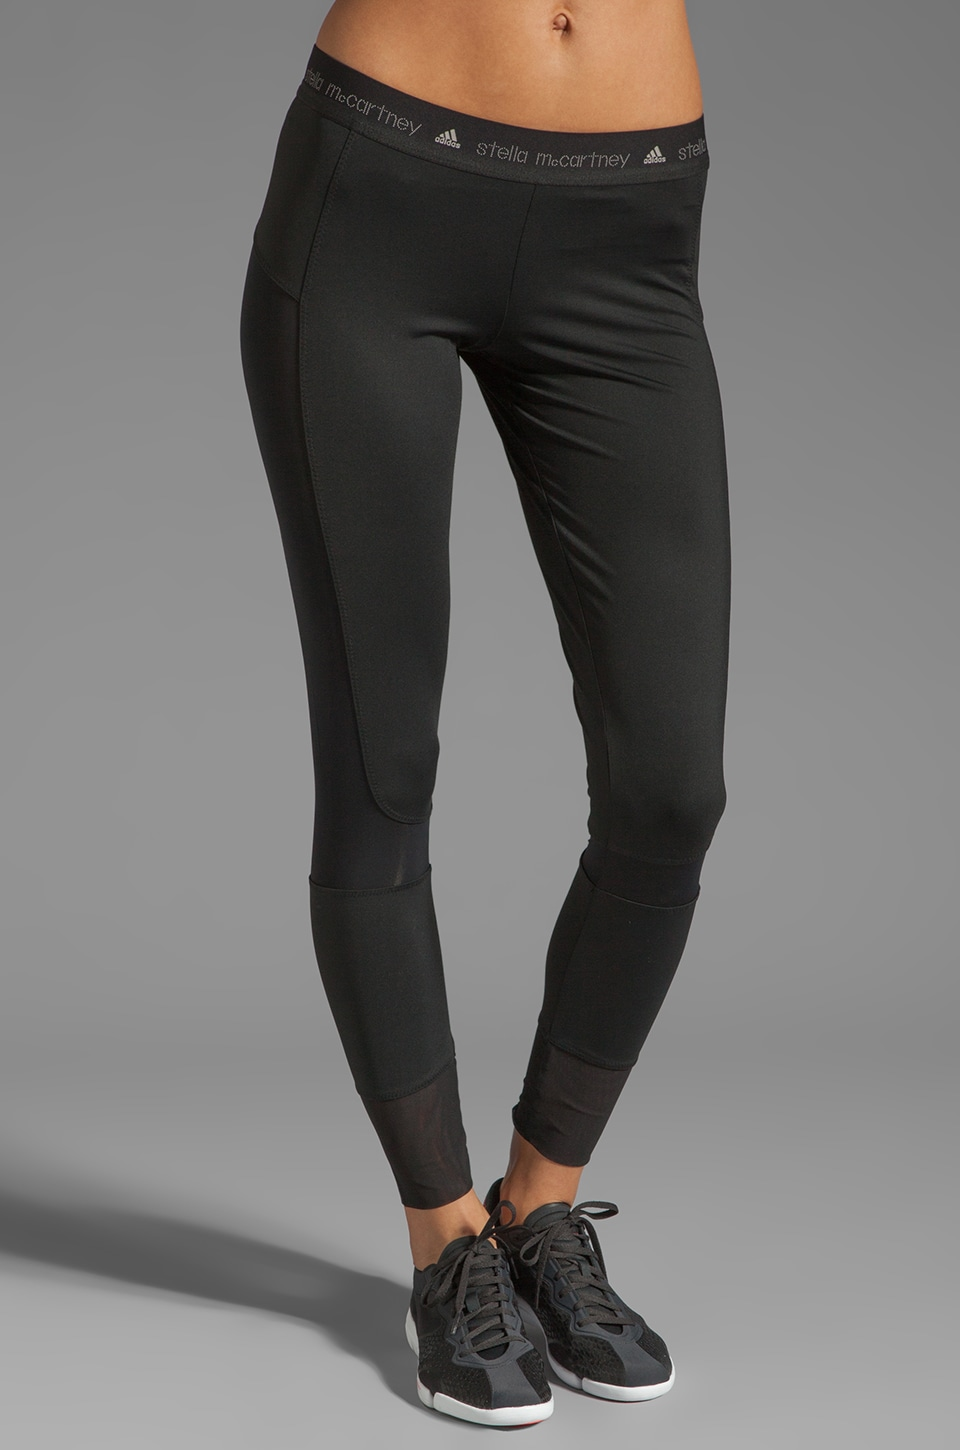 adidas by Stella McCartney Athletic Pant in Black